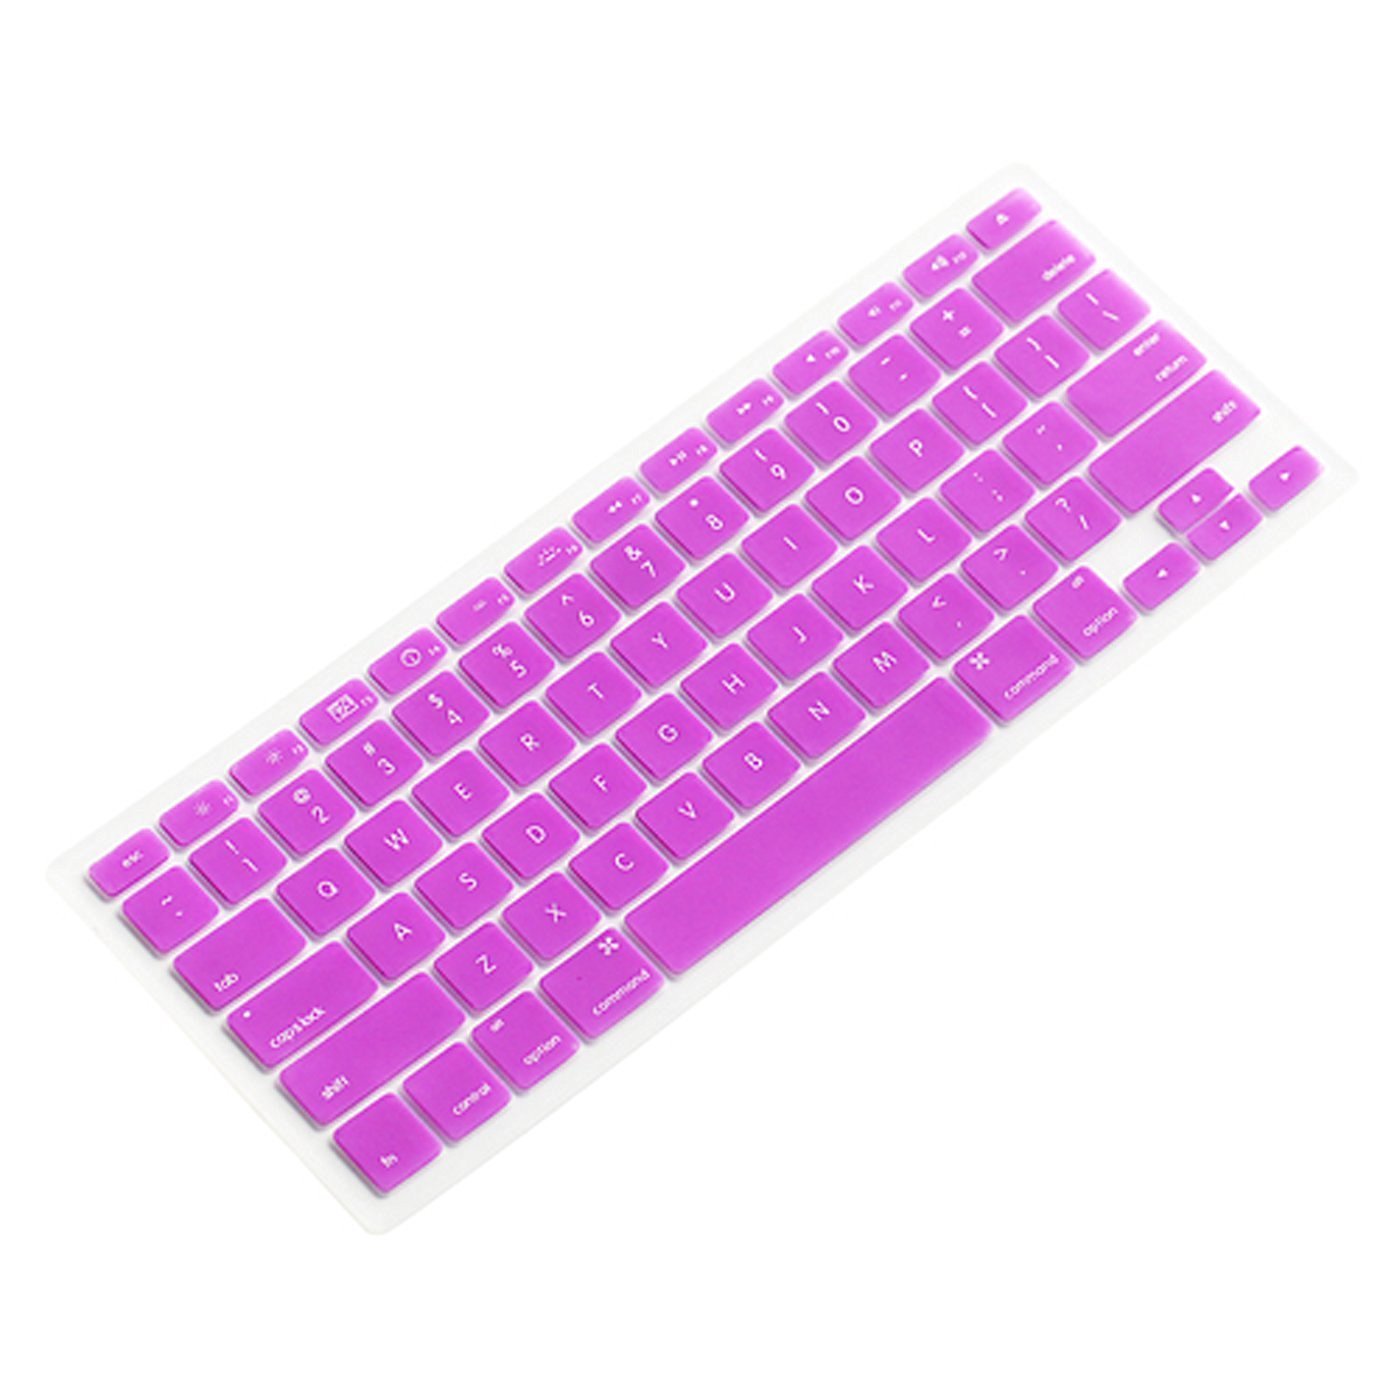 """KEEPING Silicone Keyboard Cover for Macbook Pro 13"""" 15"""" 17"""" (with or without Retina Display)/ Unibody / Wireless Keyboard (Purple)"""